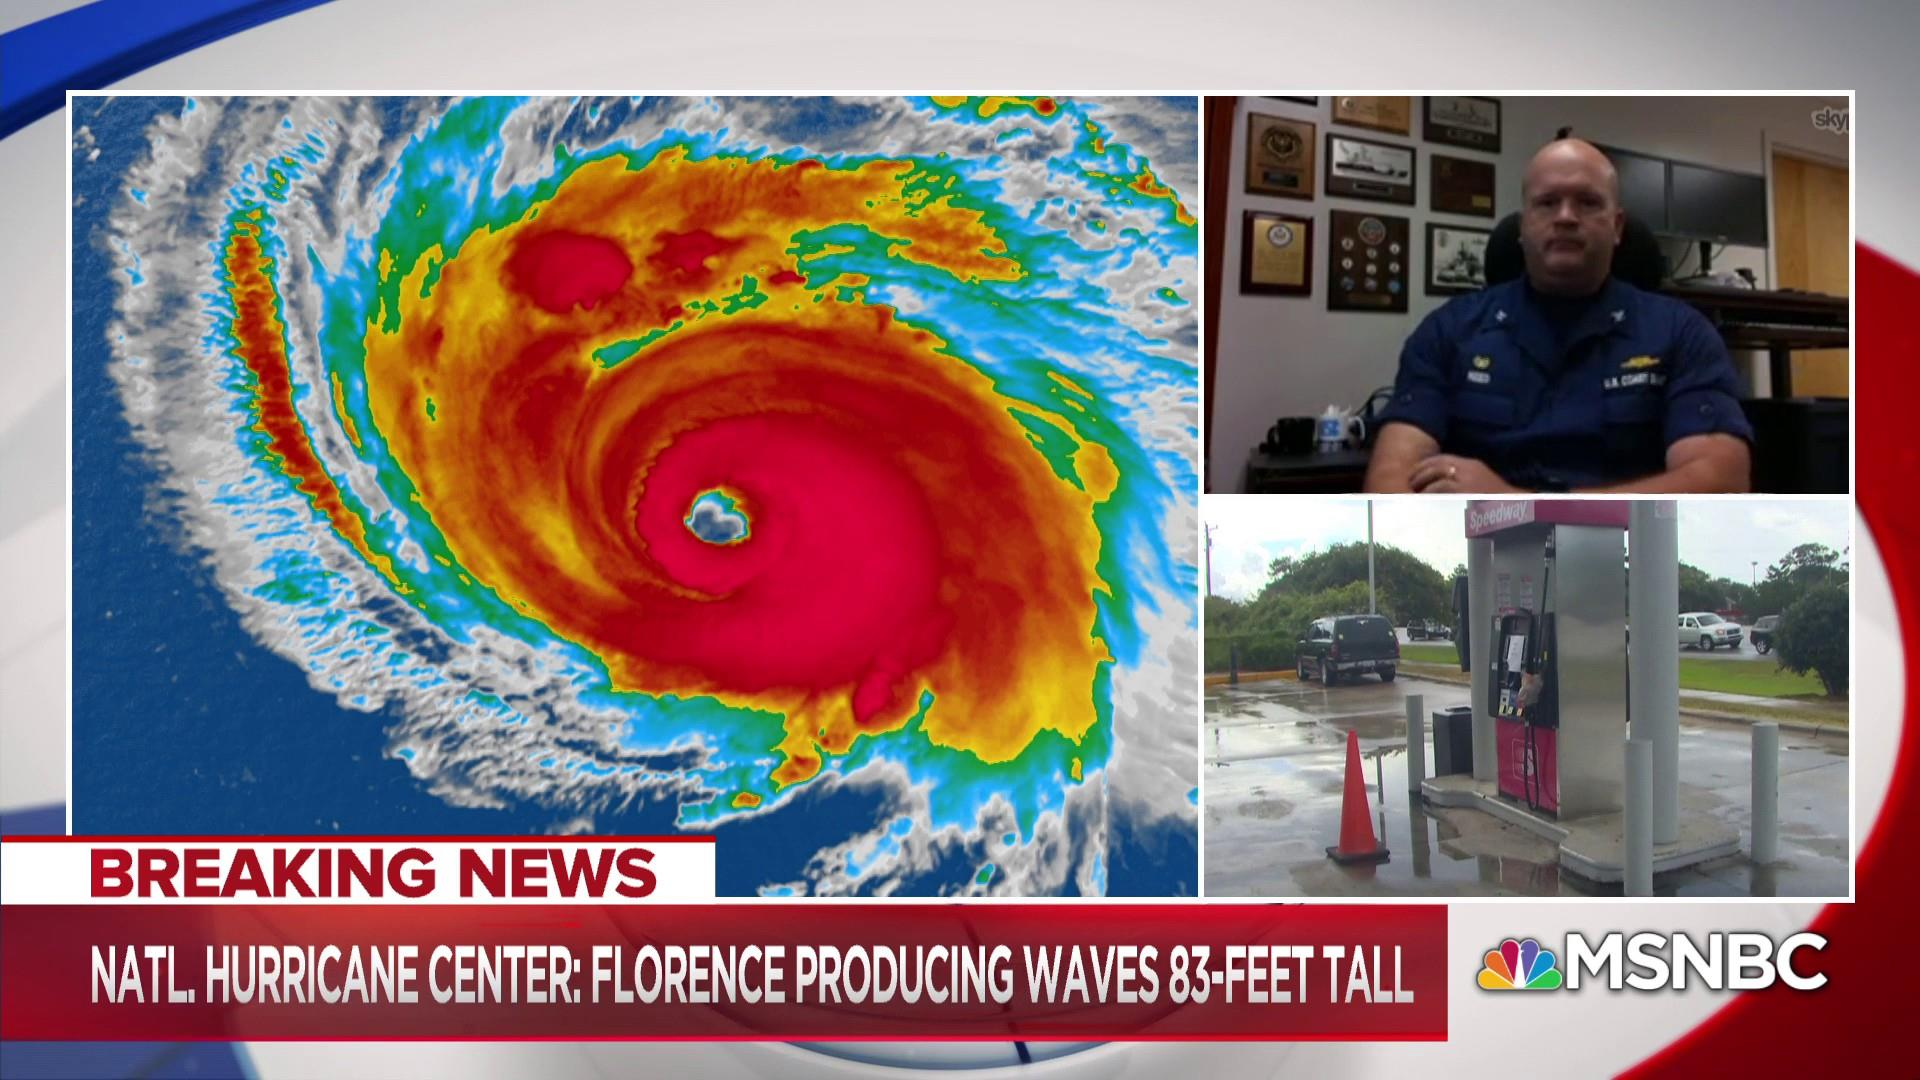 How is the Coast Guard helping with Hurricane Florence?